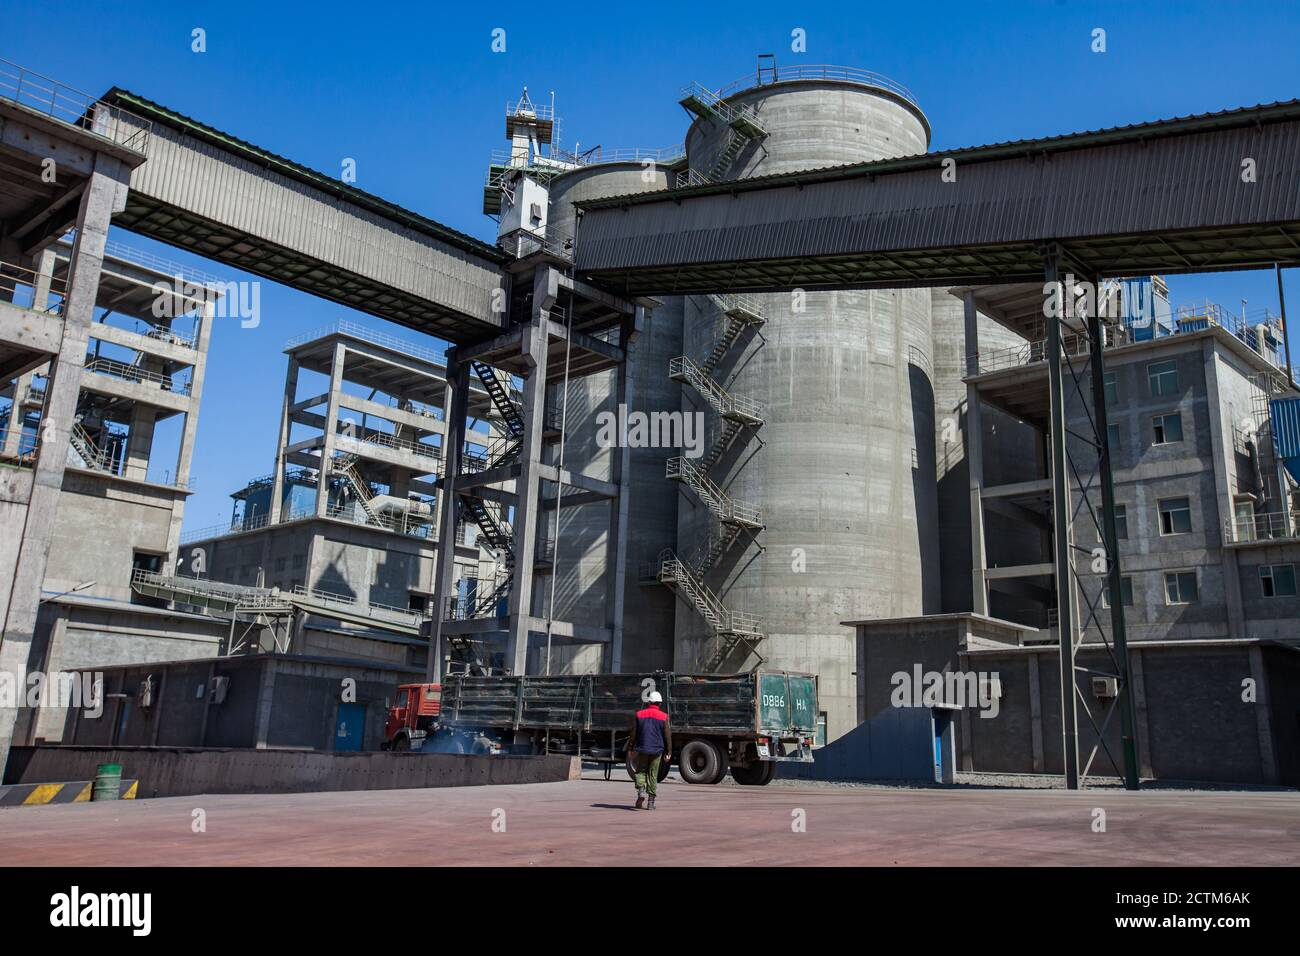 Mynaral/Kazakhstan - April 23 2012: Modern Jambyl Cement plant. Industrial buildings, cement silos, truck and worker on blue sky. Stock Photo